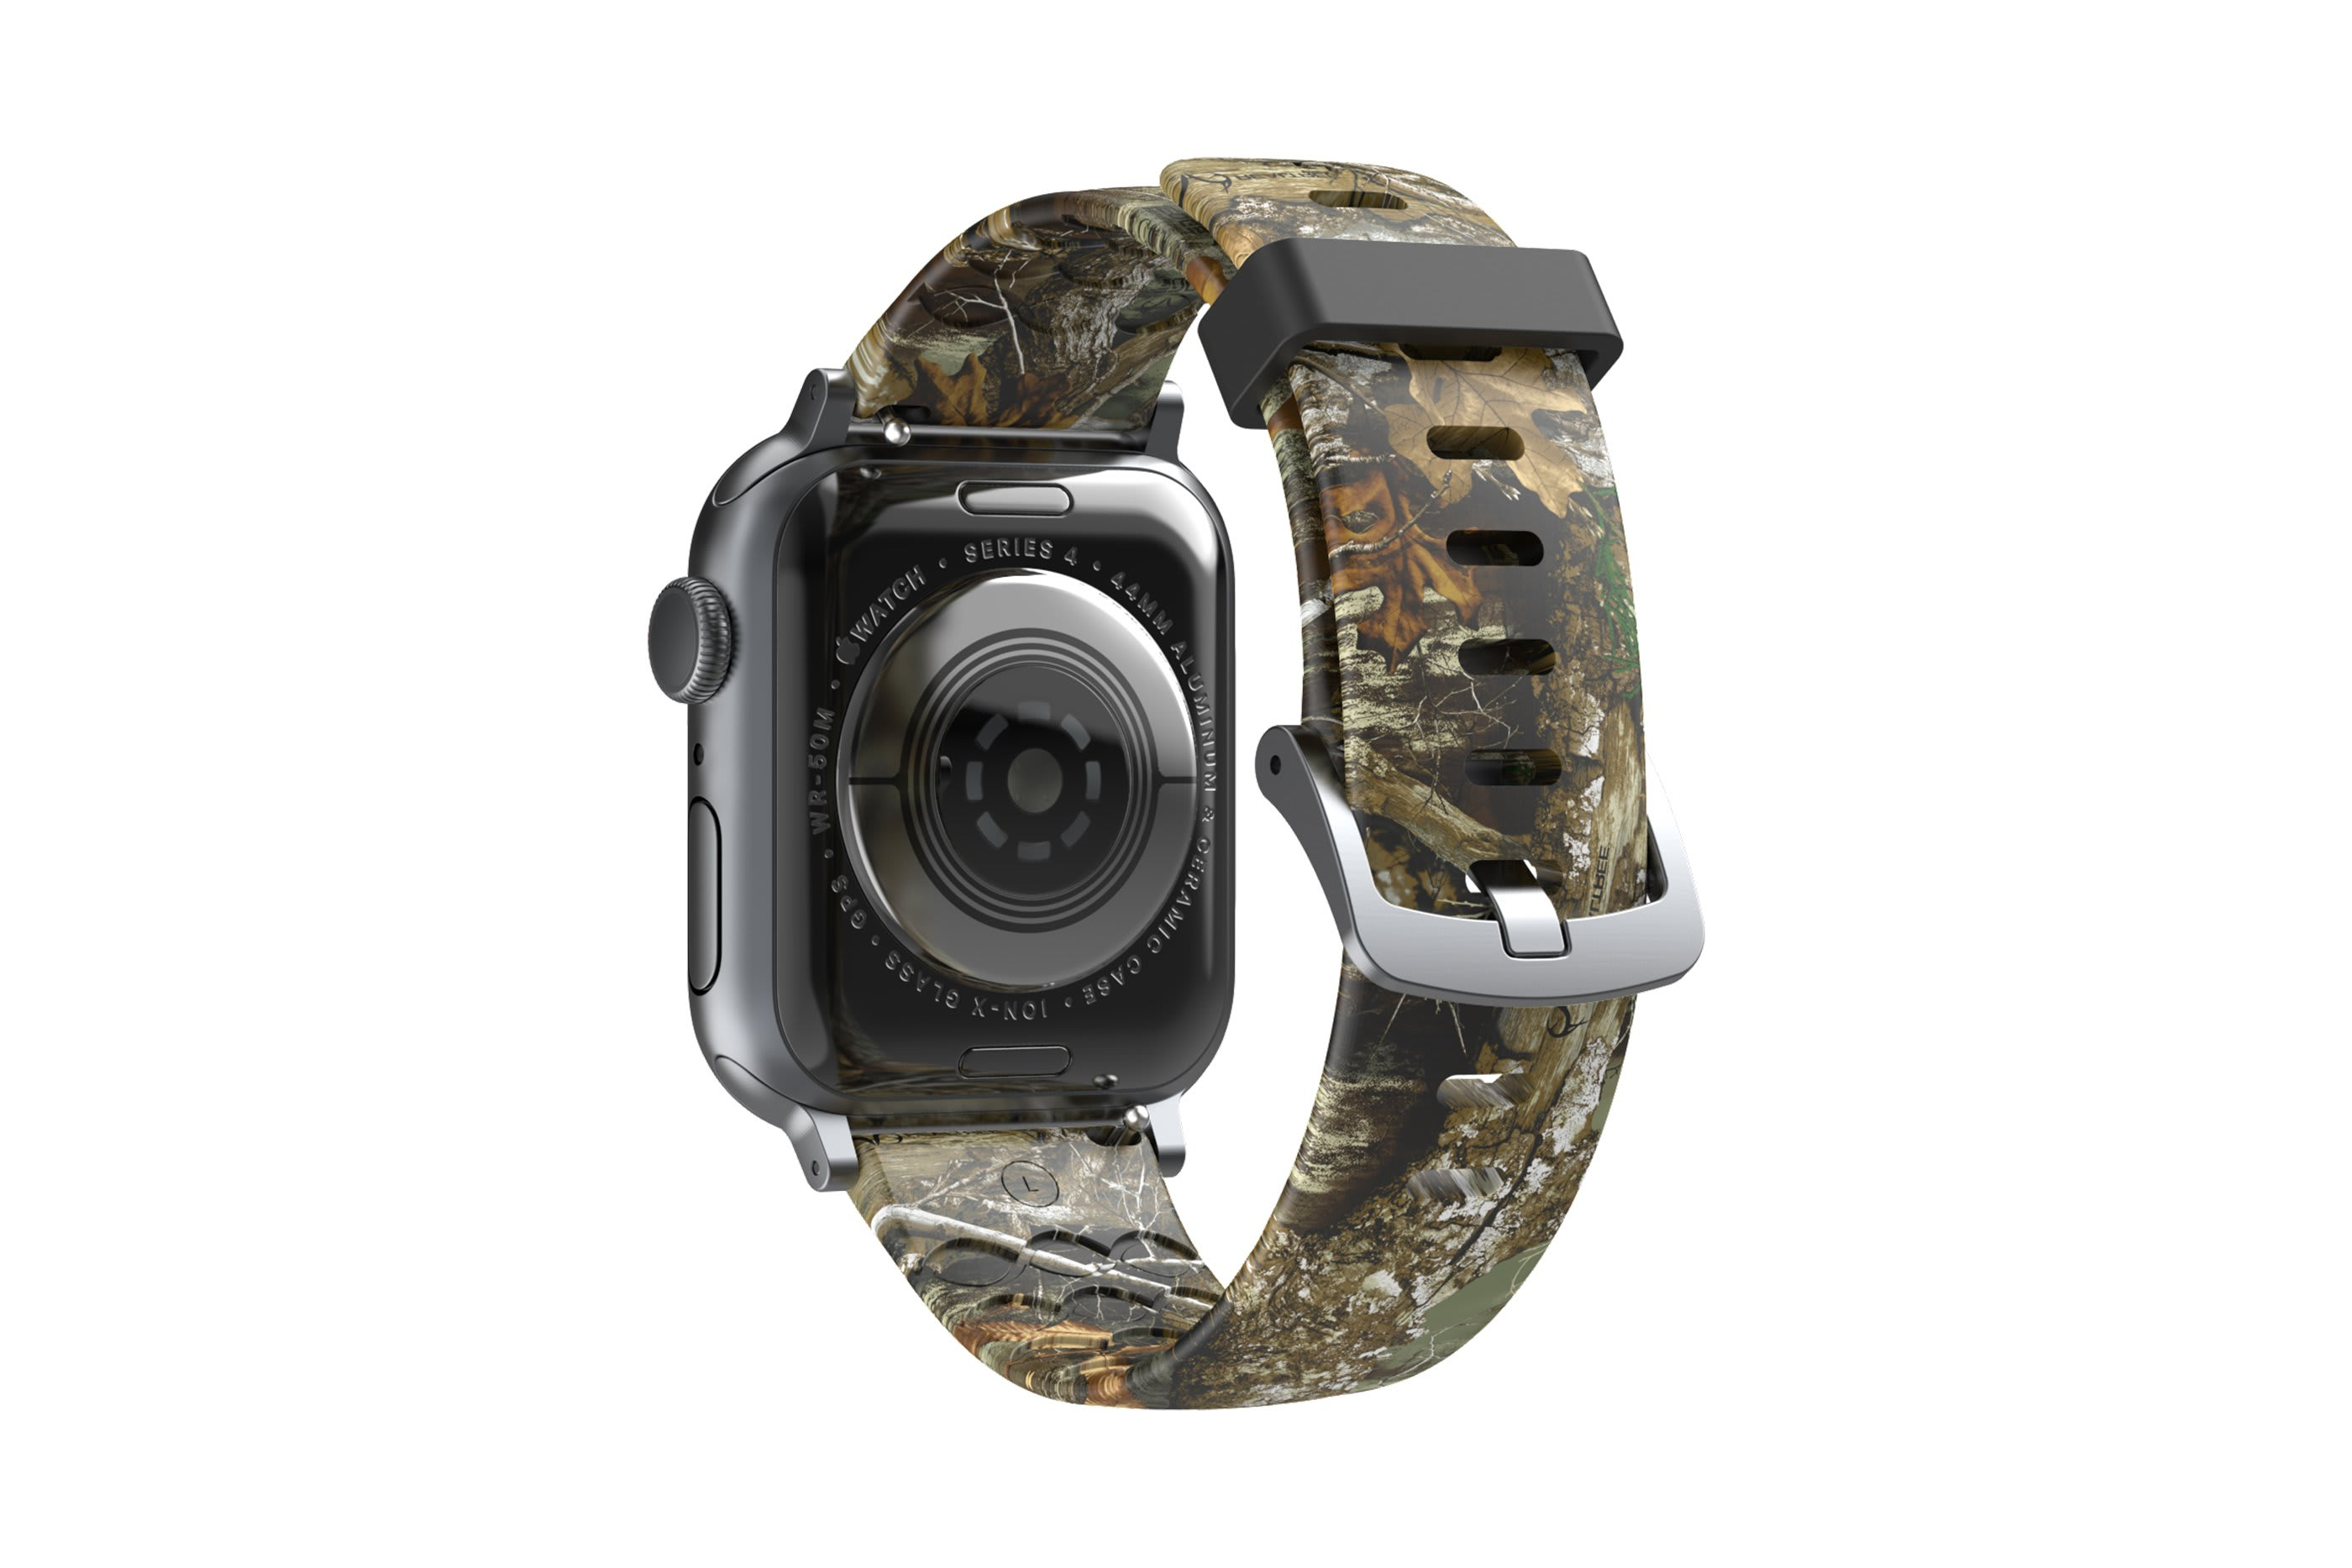 Realtree Edge Apple Watch Band with gray hardware viewed from top down